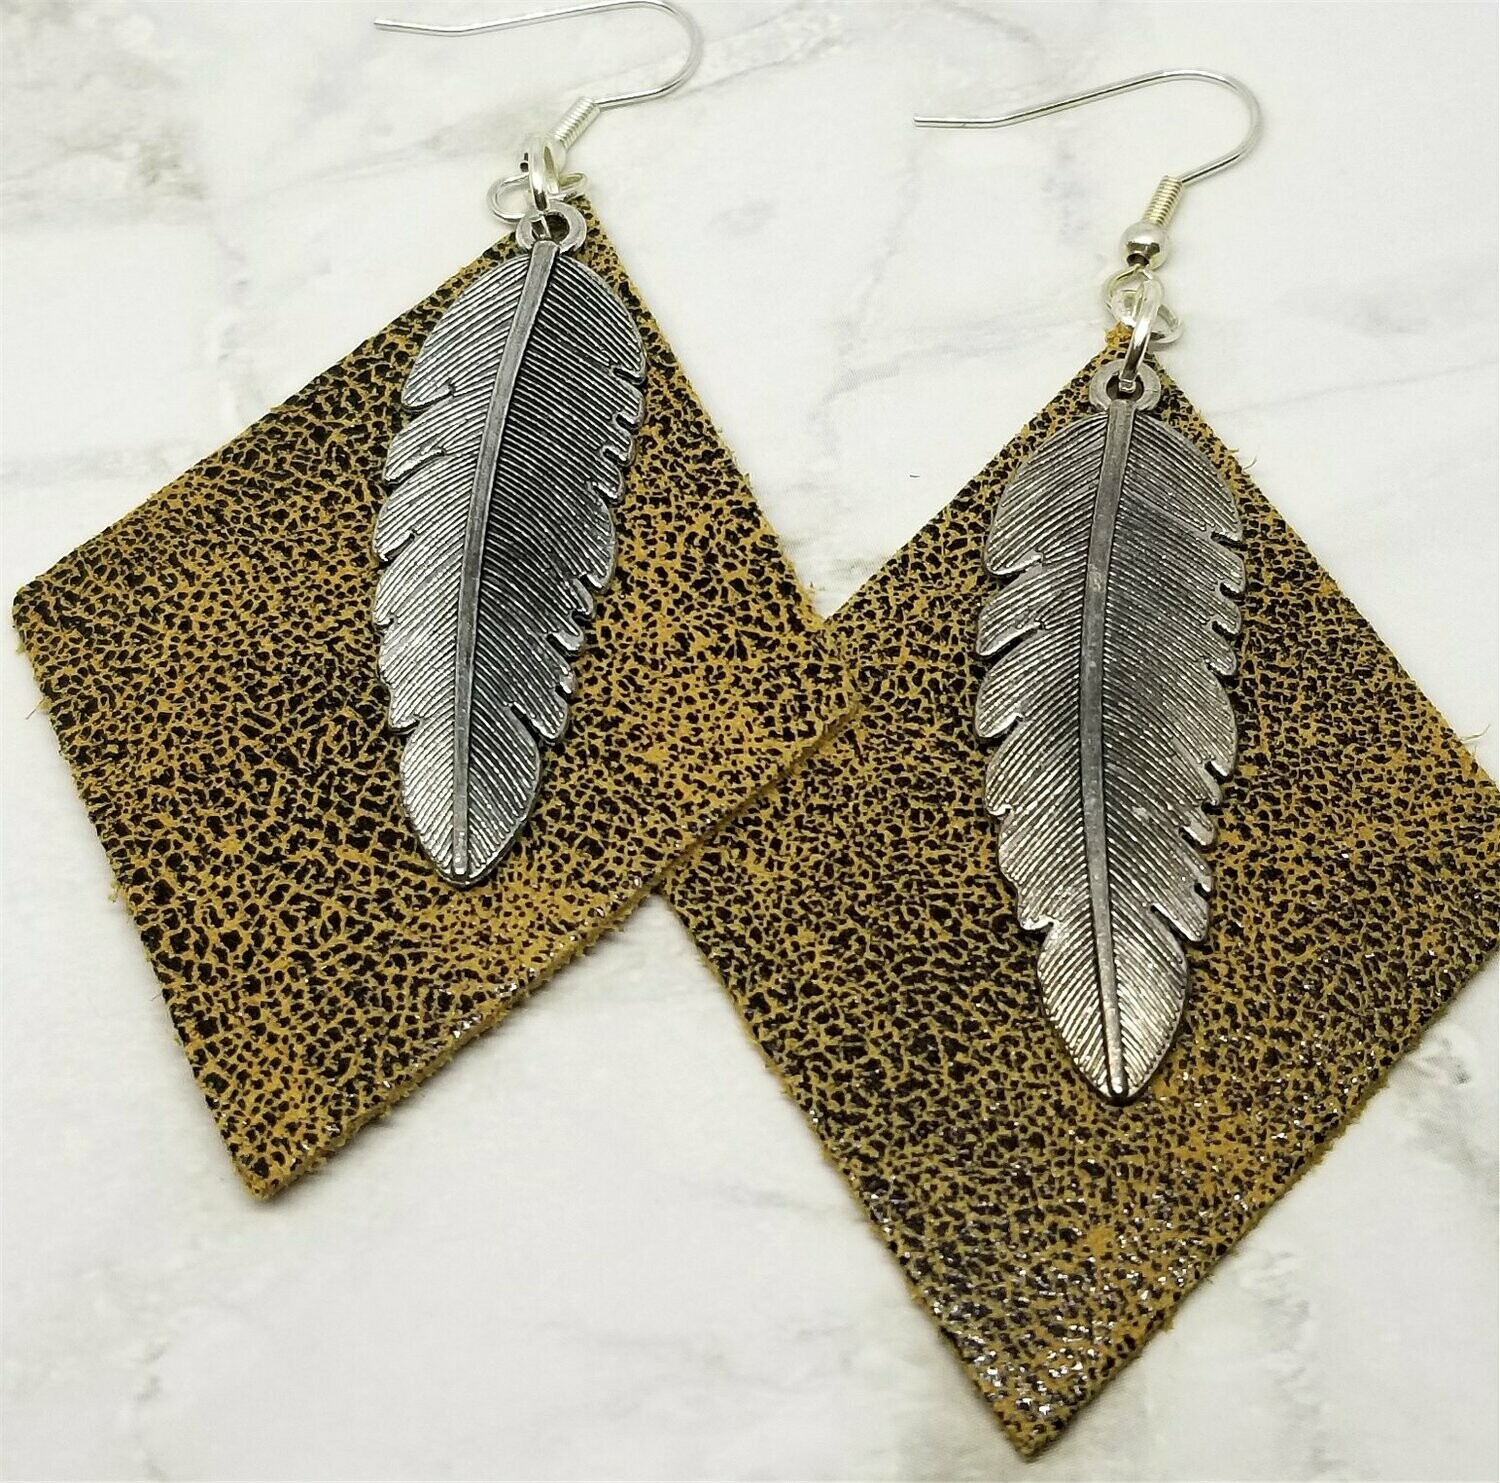 Diamond Shaped Leather Earrings with Silver Feather Charm Overlay